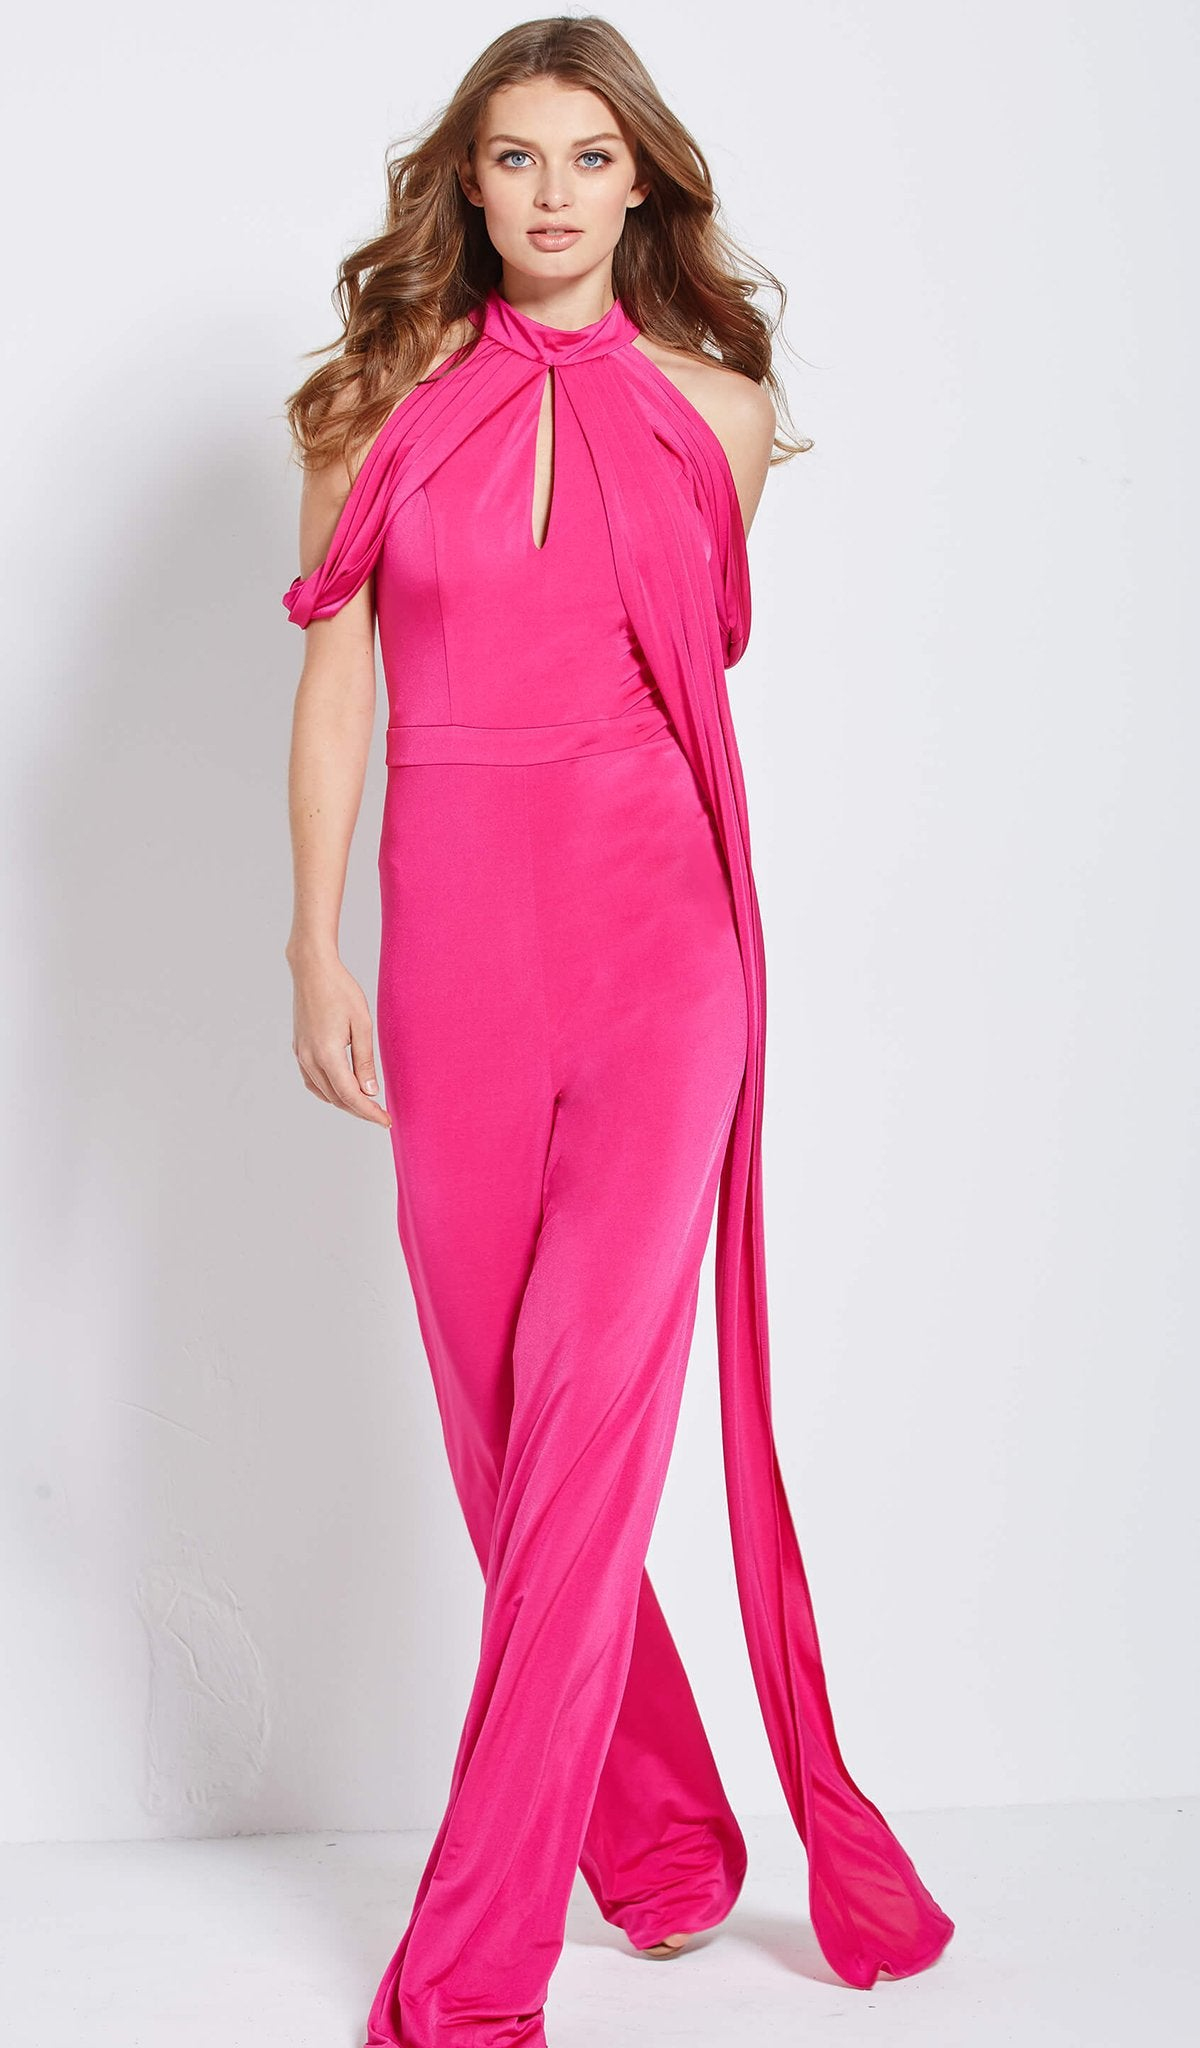 Jovani - 51785 Cold Shoulder High Neck Jumpsuit in Pink